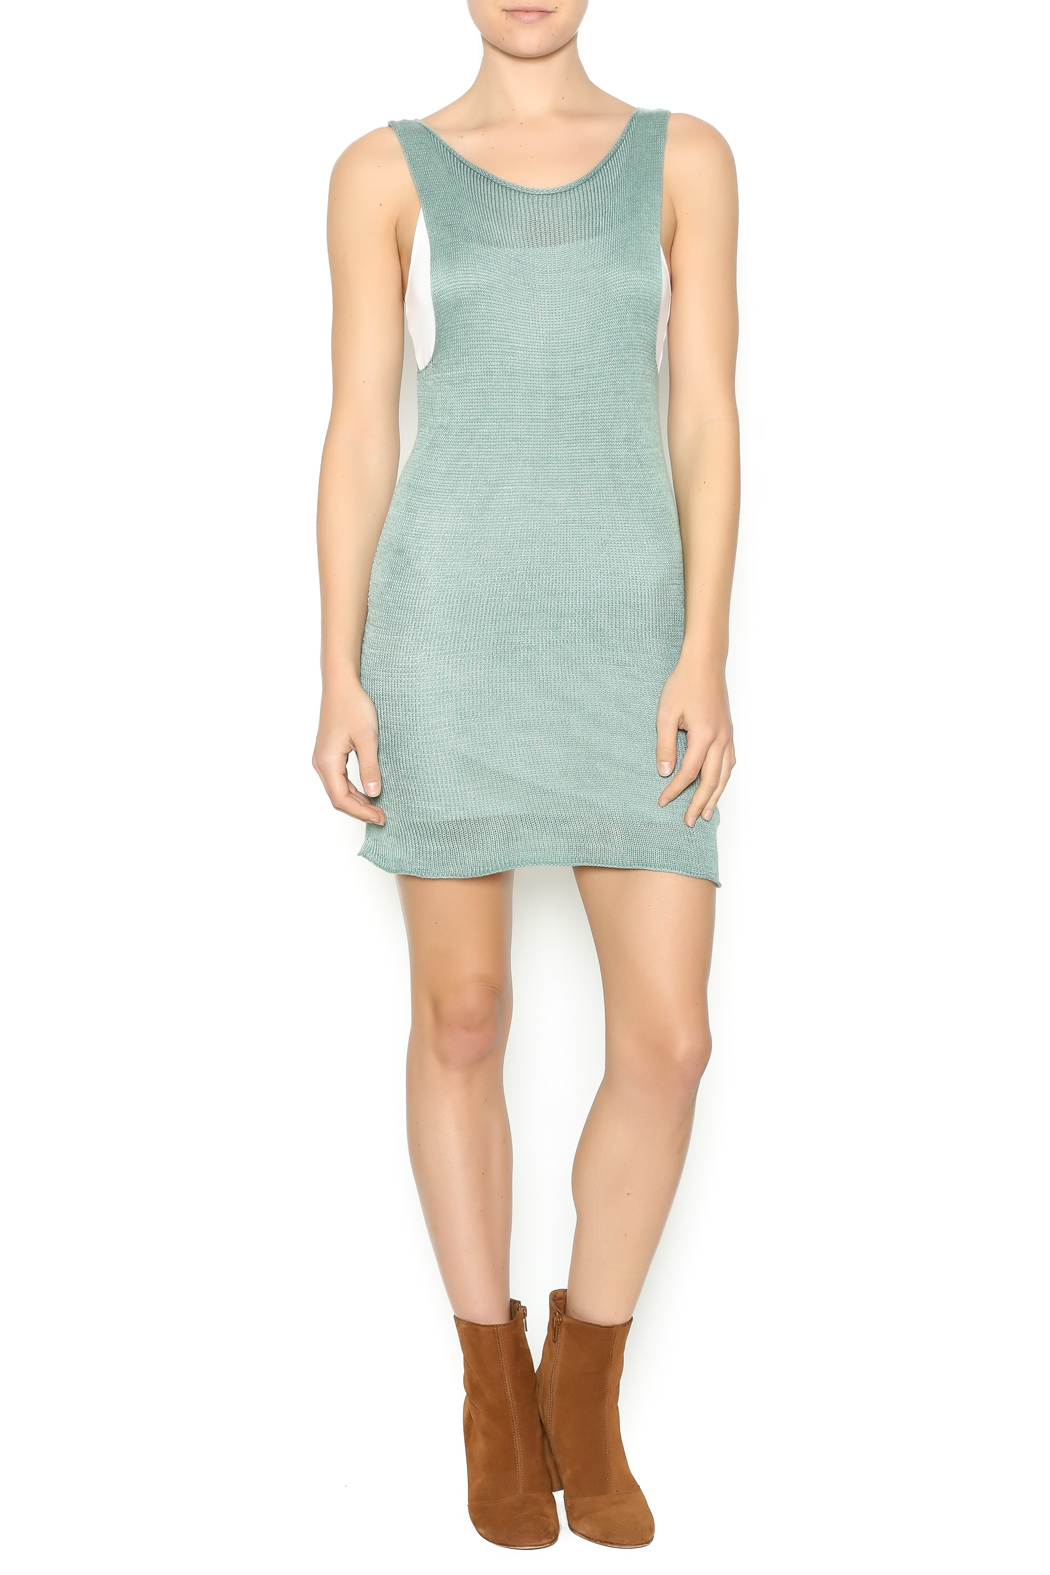 DC KNITS Sleeveless Bamboo Dress - Front Full Image